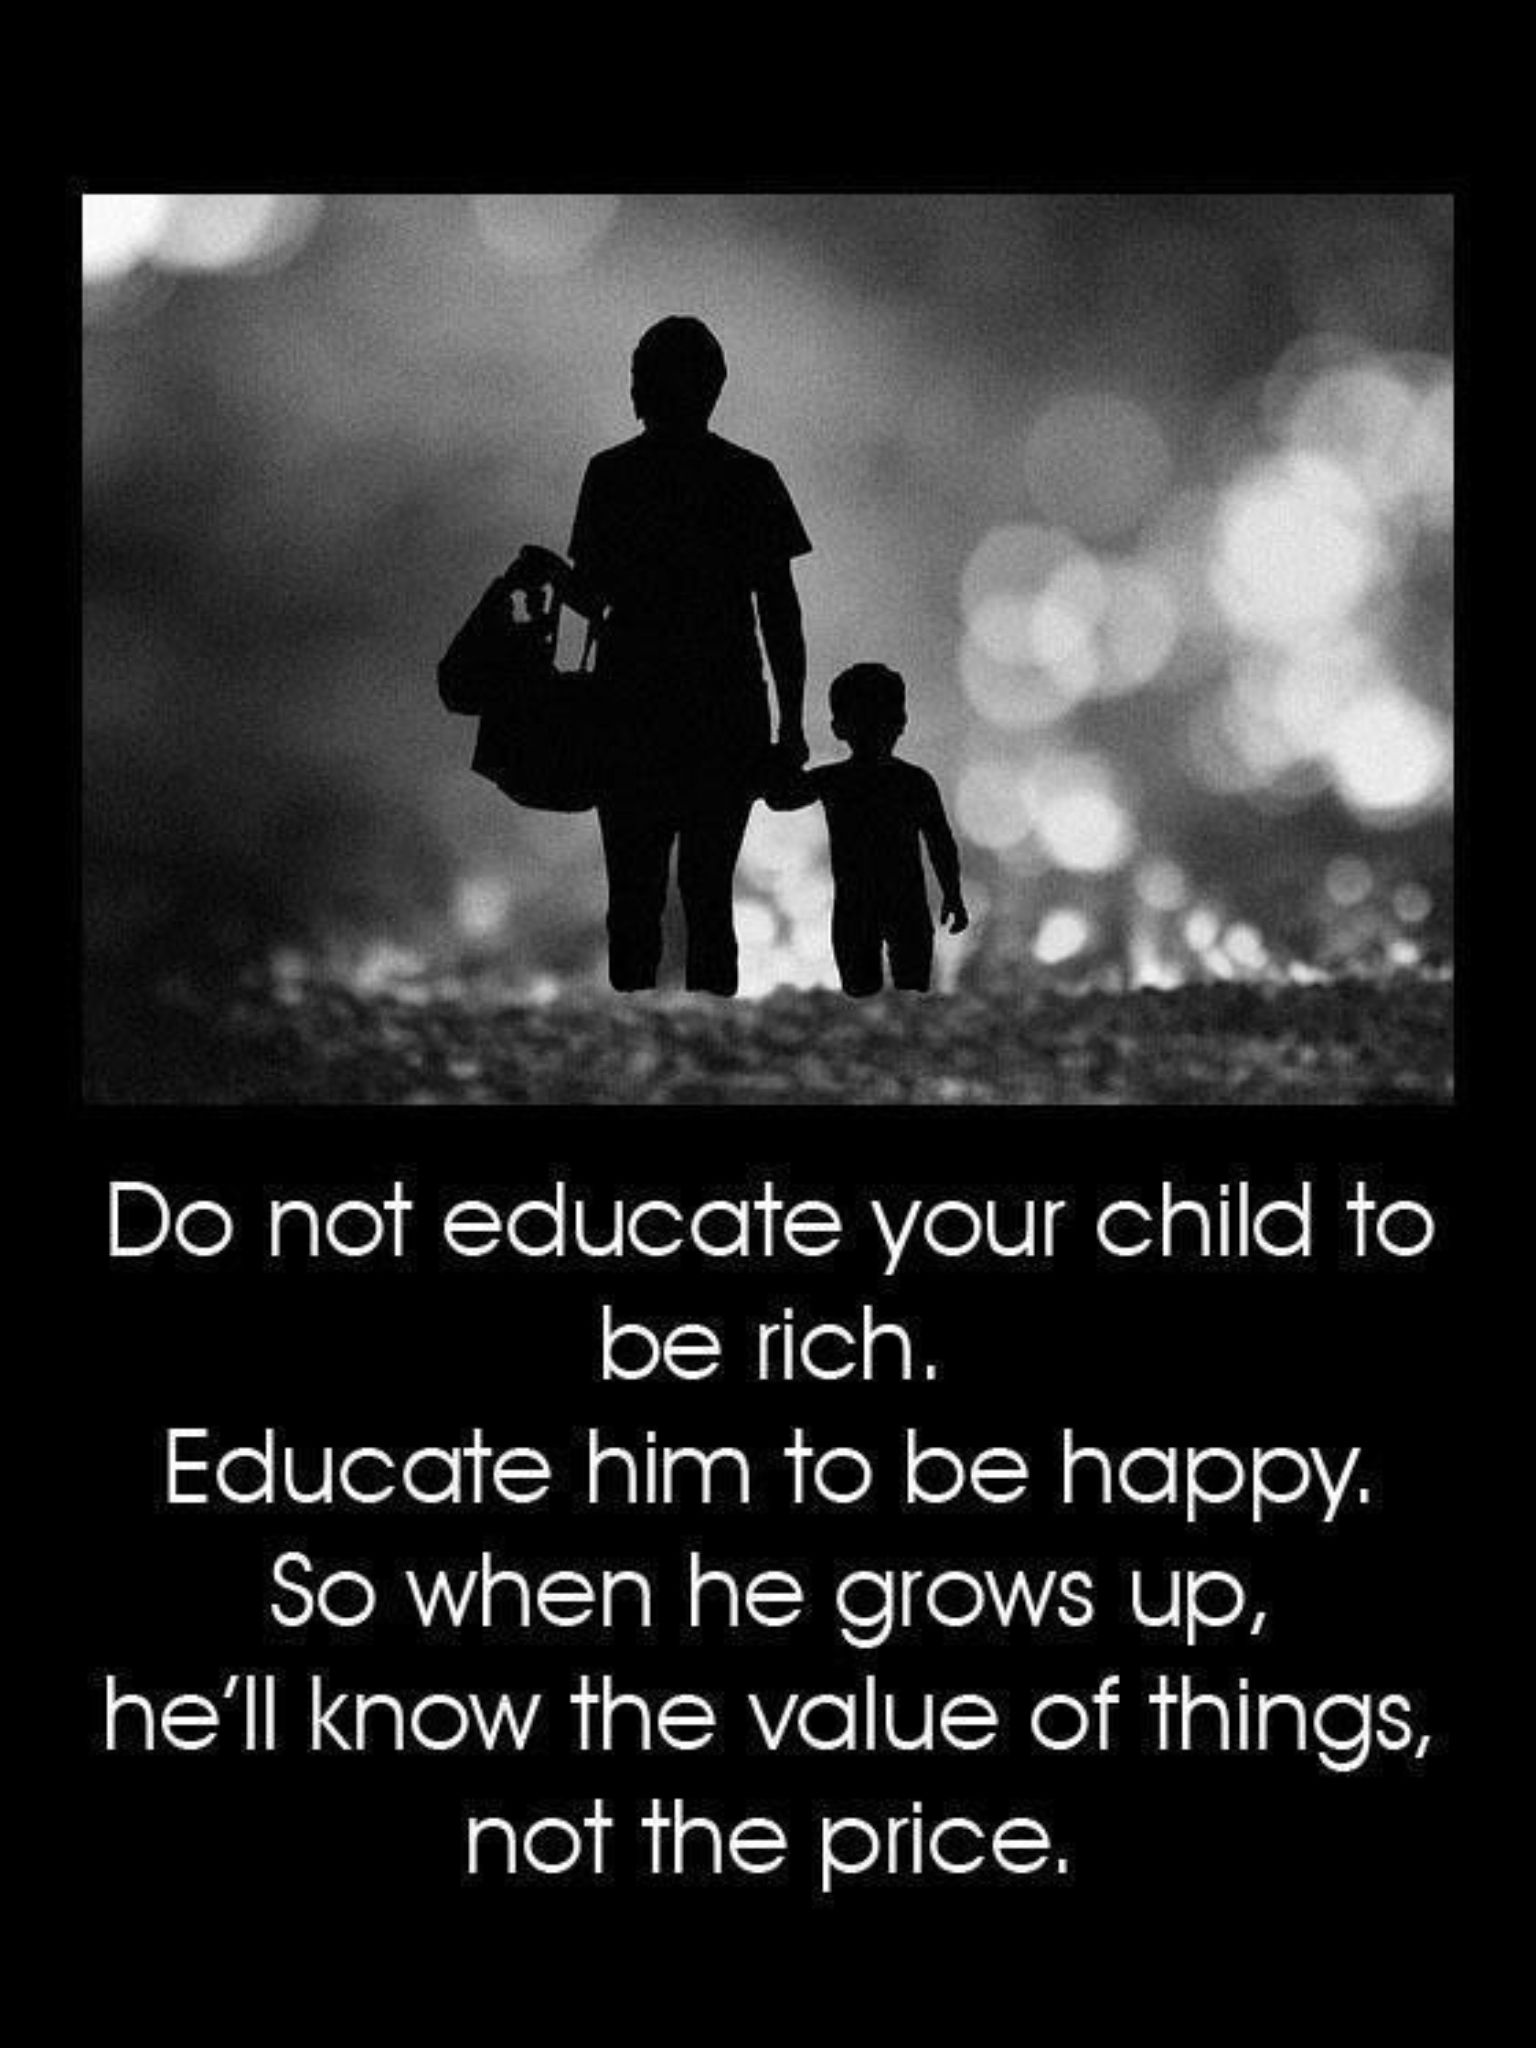 Parents are the biggest teachers! Yet some don't know the real value in life. All they care about is money!